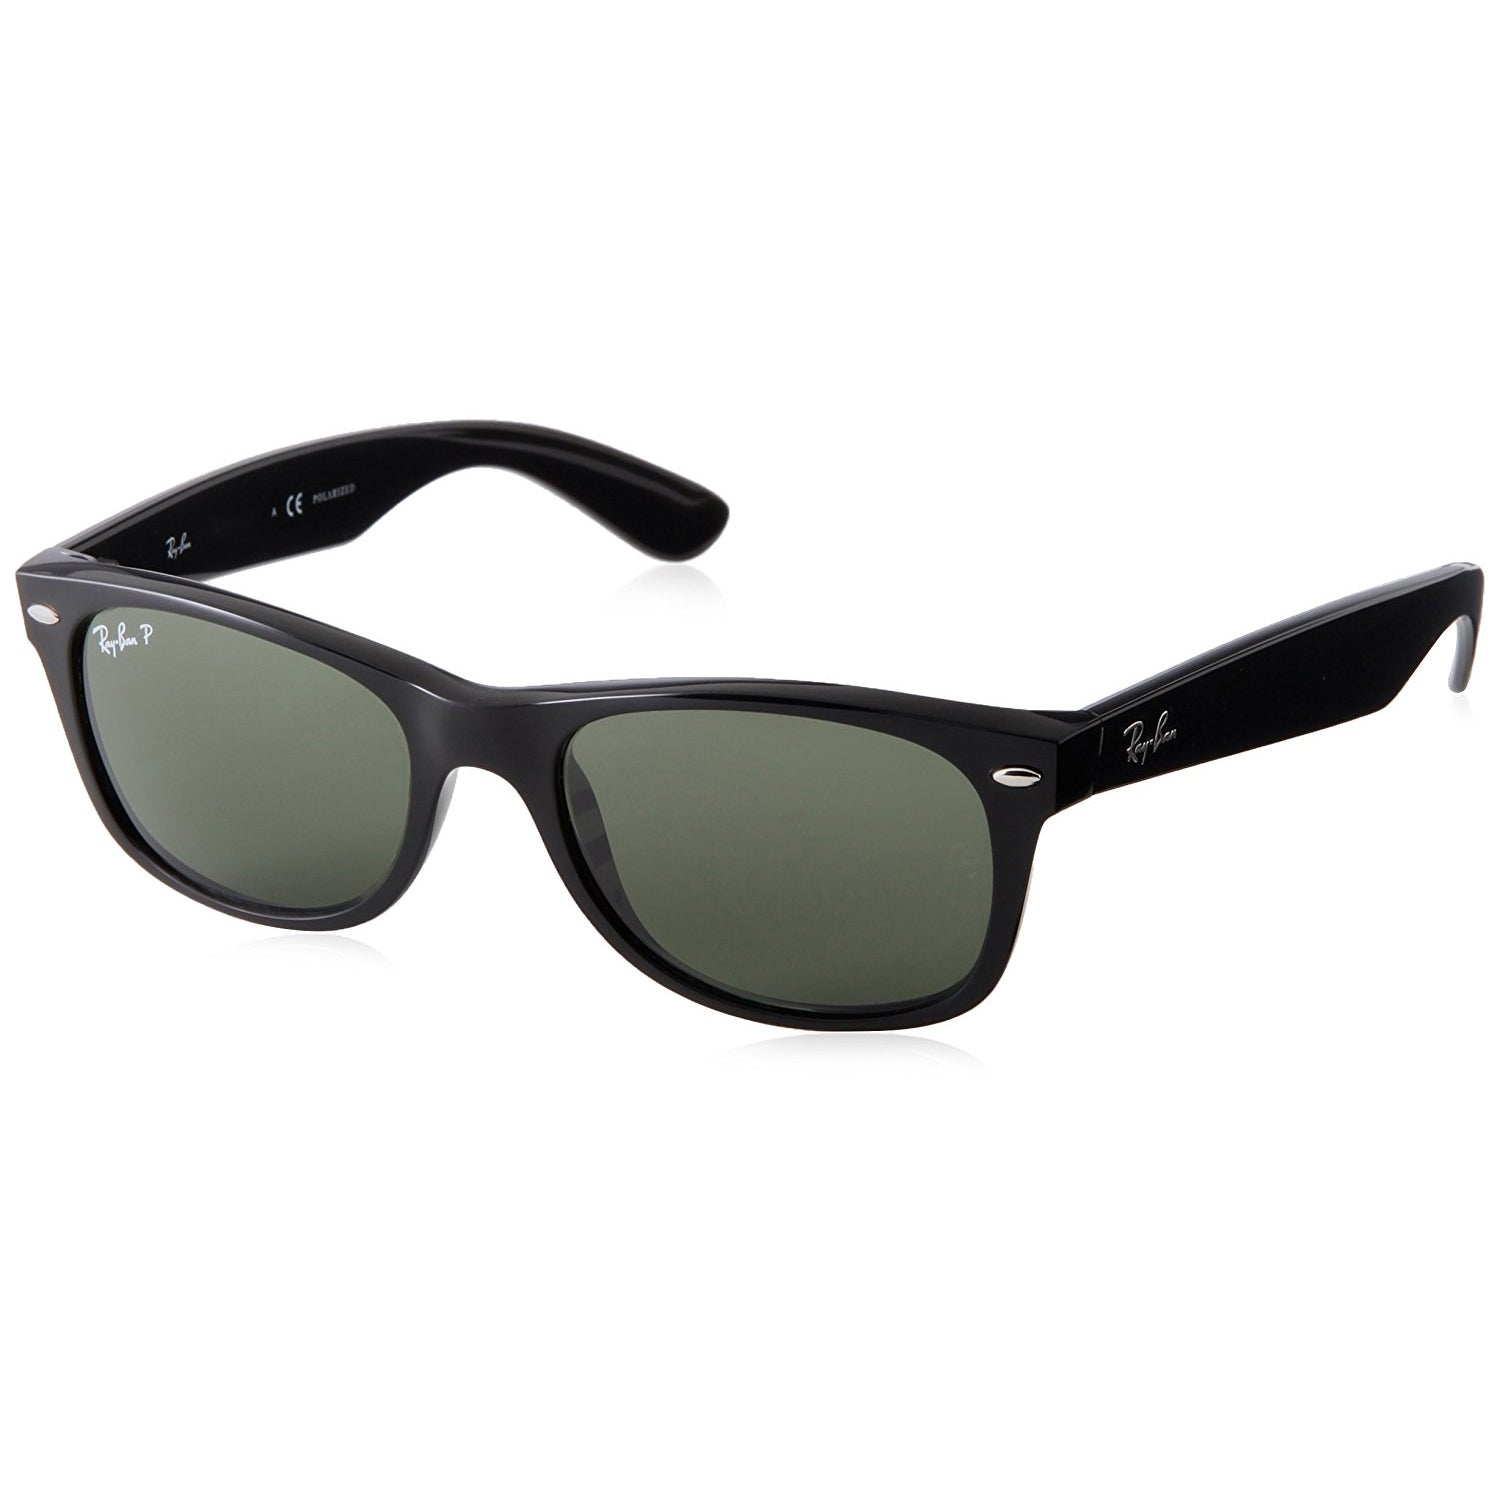 524de617d04f Shop Ray-Ban New Wayfarer Classic RB 2132 Unisex Black Frame Green Classic  Lens Sunglasses - Free Shipping Today - Overstock - 5173946